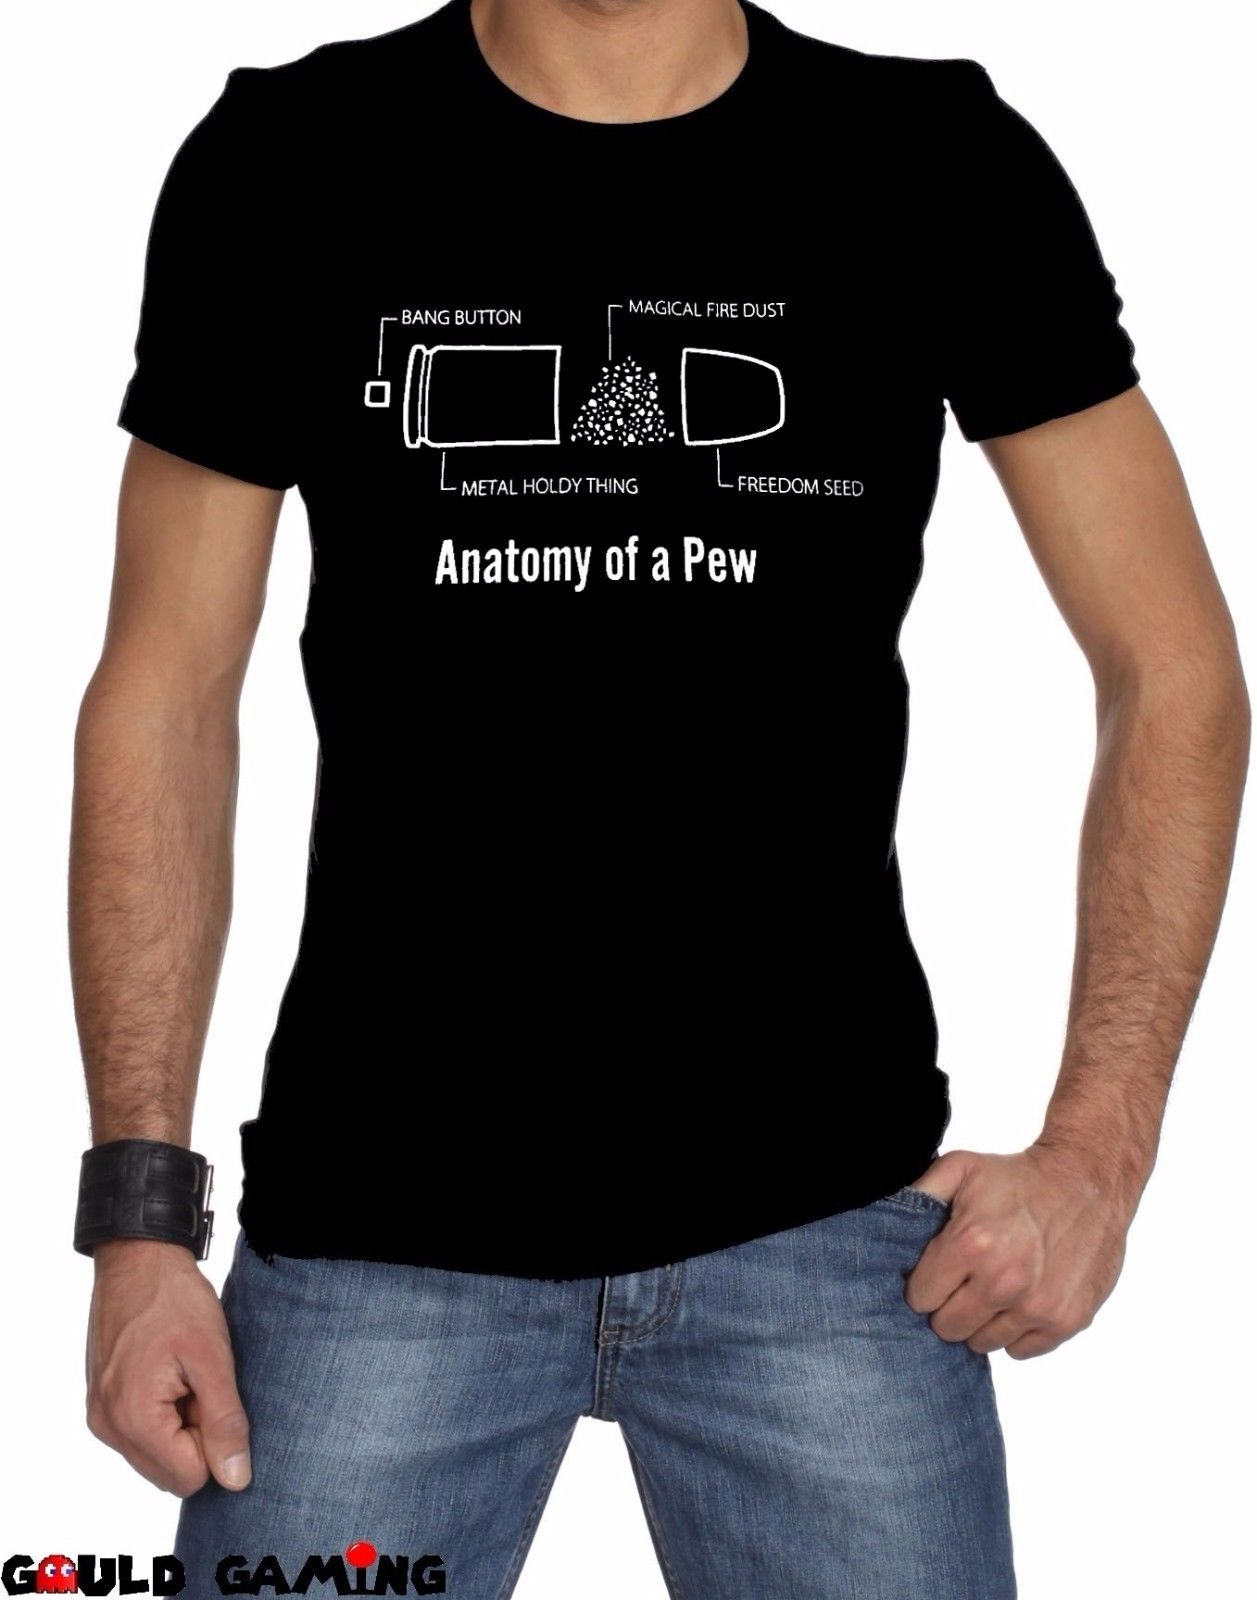 401eb832 Print Shirts Men Anatomy of A Bullet T-Shirt Unisex Cotton Adult Funny Pew NRA  Gun Rights Freedom 100% Cotton Brand New T-Shirts